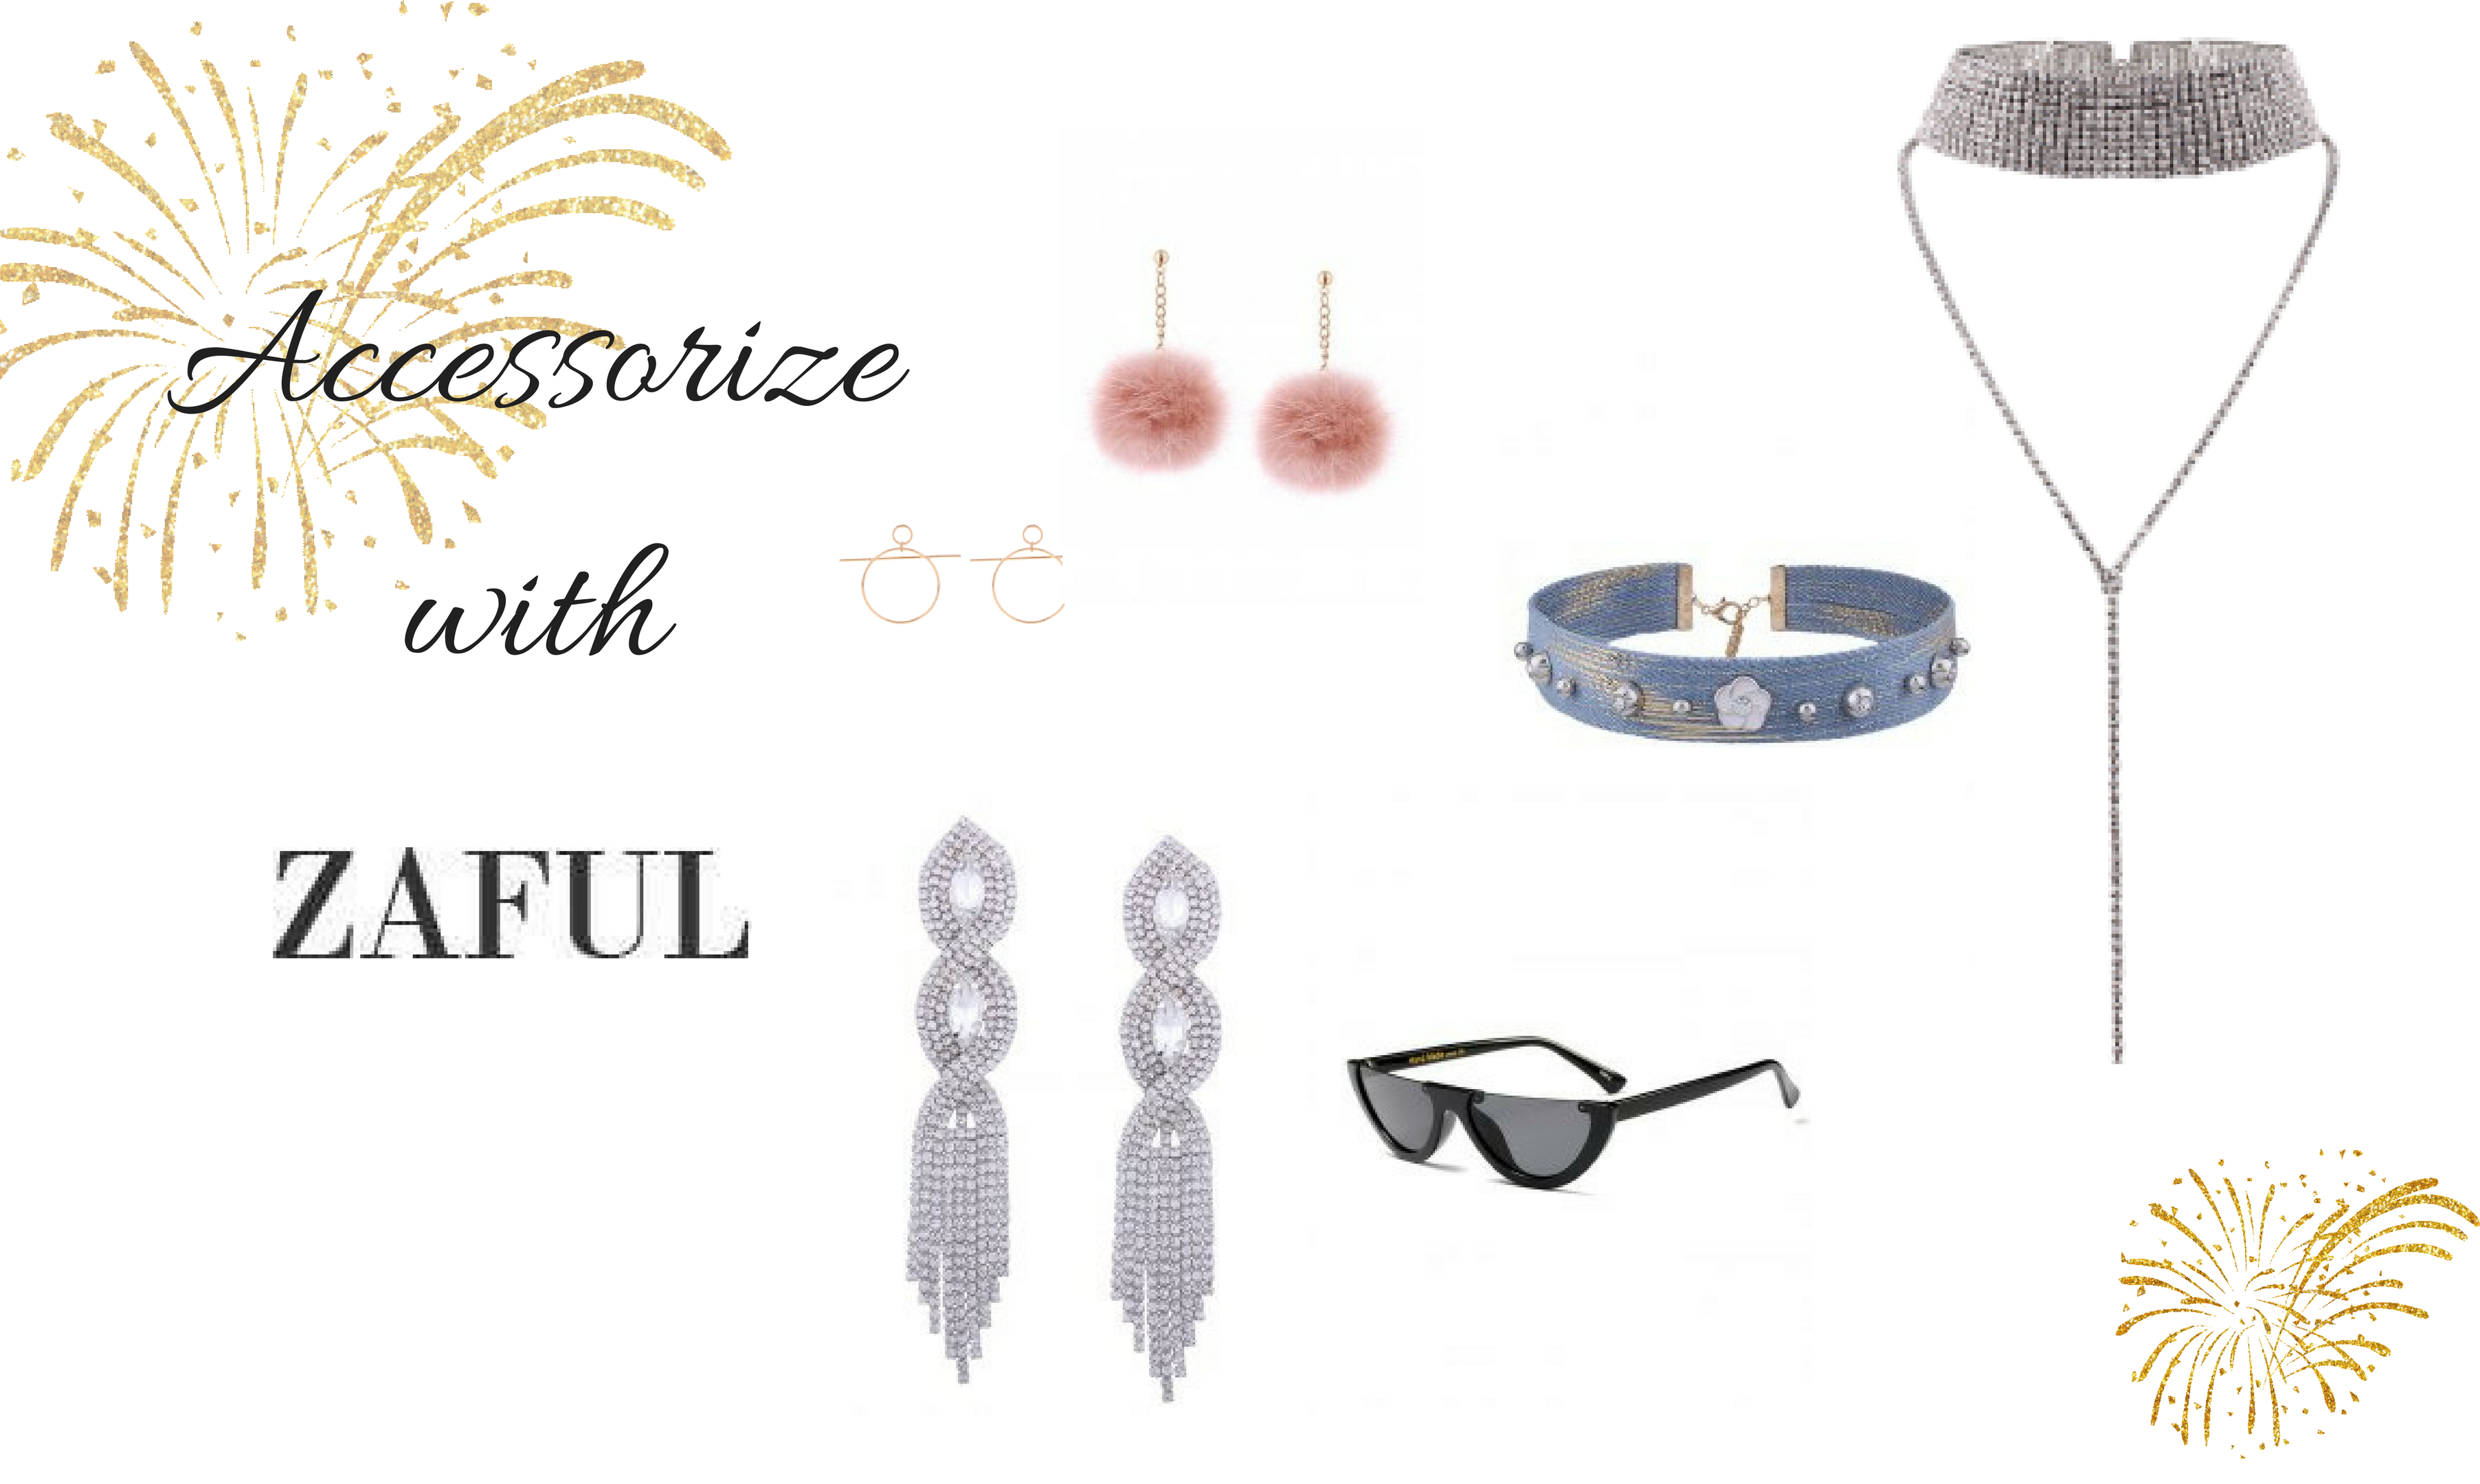 STAY ON TREND WITH ZAFUL ACCESSORIES